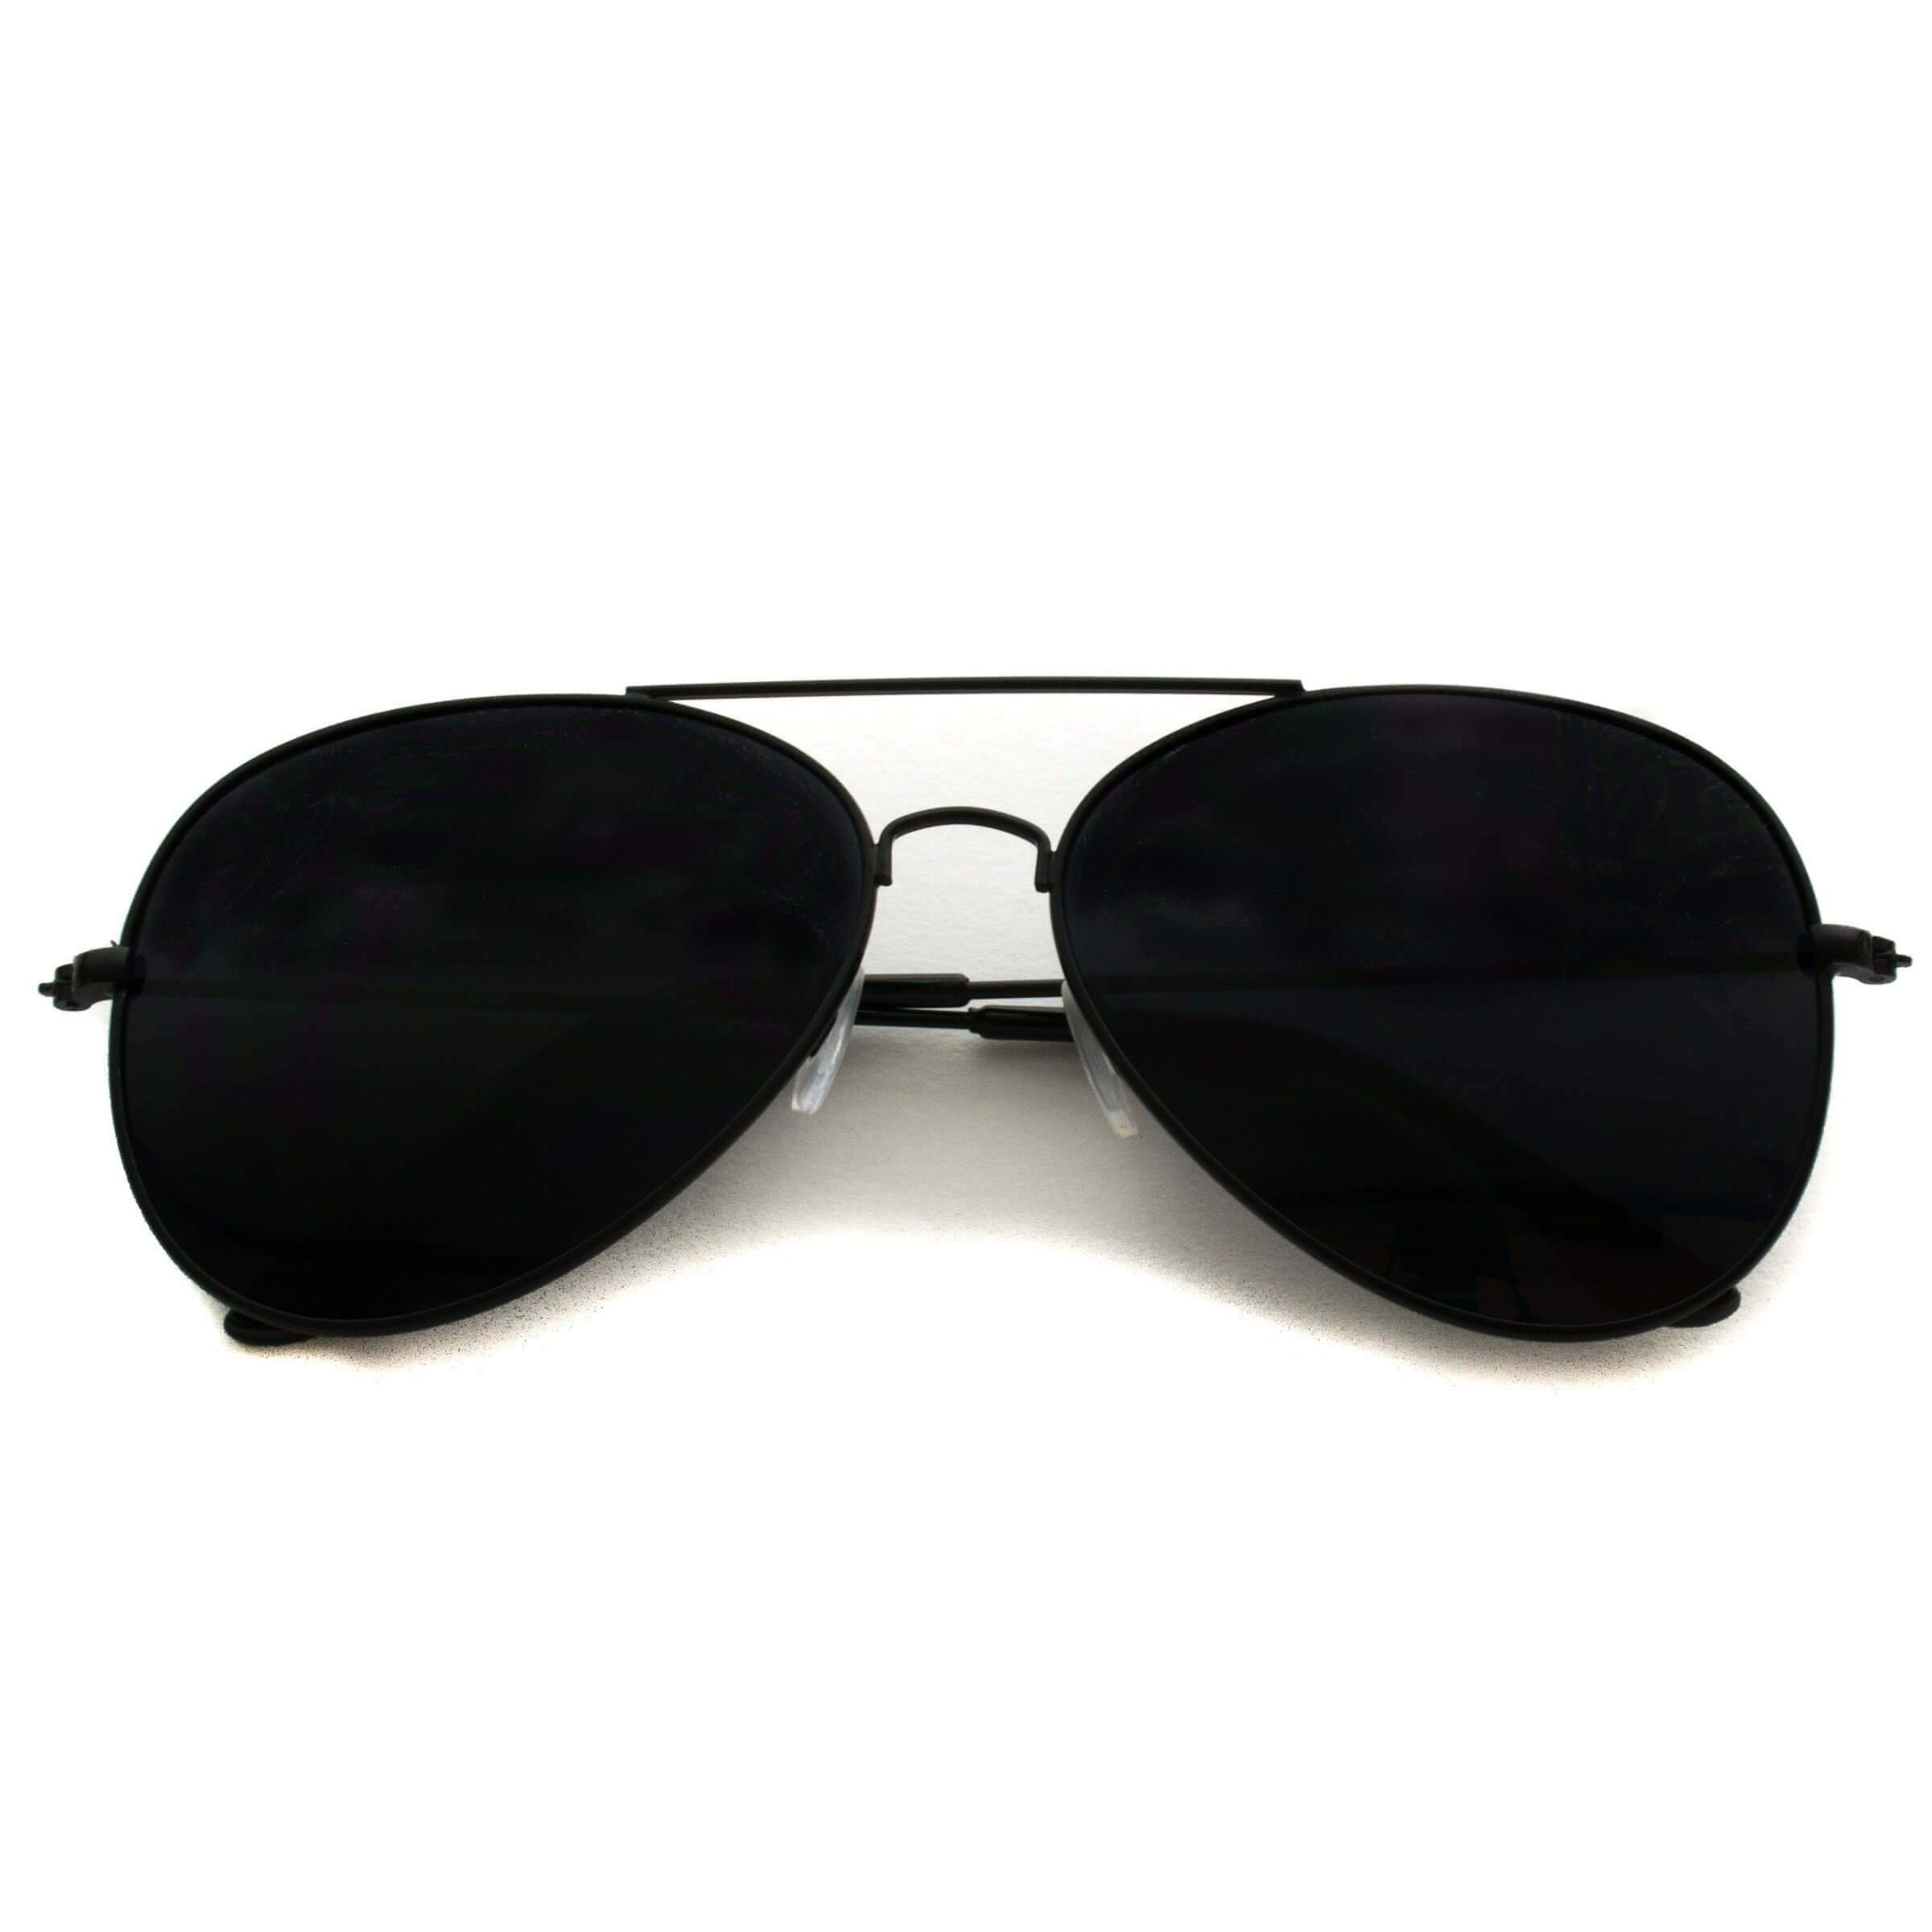 964f3fab2b Stylish Maxwell Full Black Aviator Sunglasses - Affordable Black Aviators  These black aviators are a true classic. When a design is this neat and  timeless